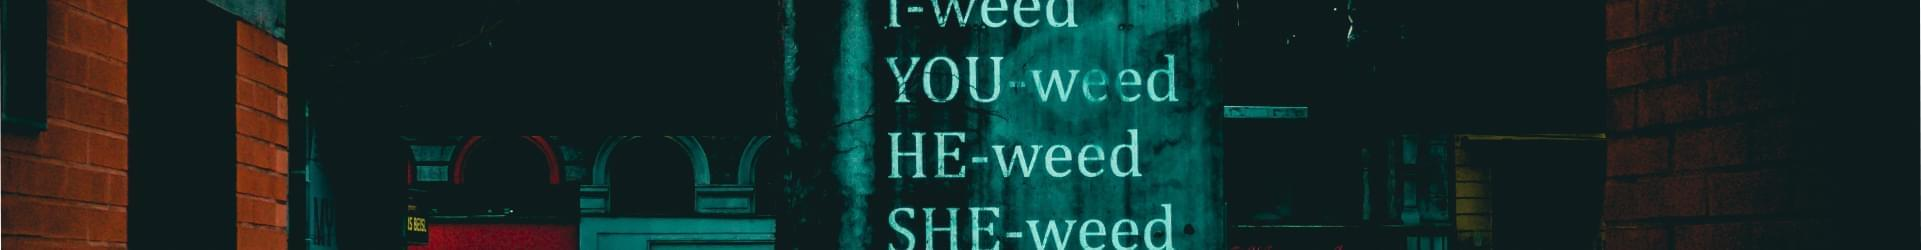 Weed Quotes on Dark Streets